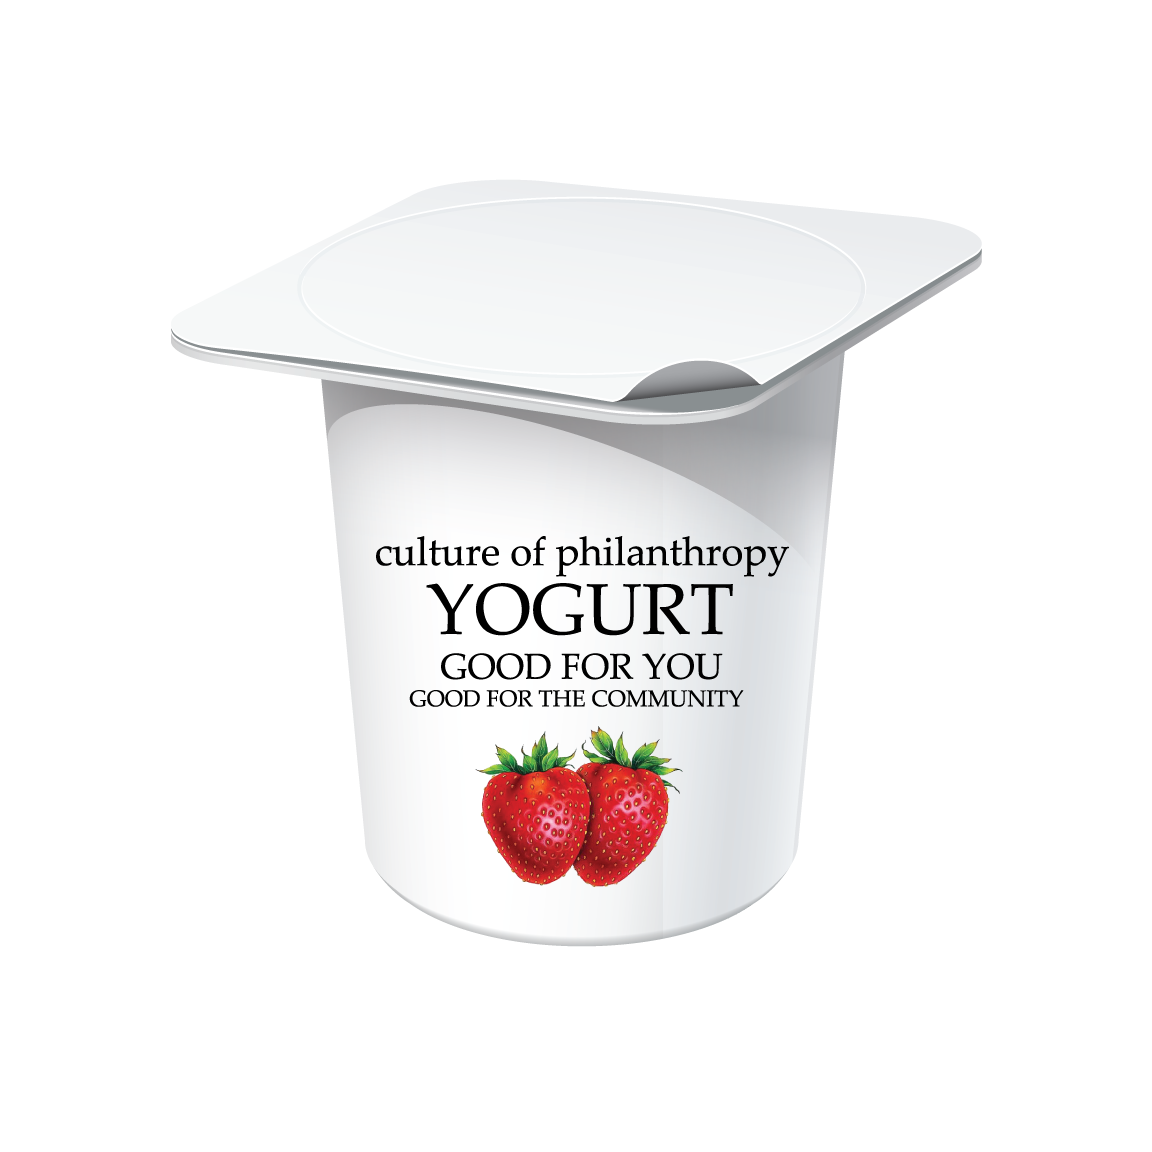 Png images free download. Yogurt clipart animated